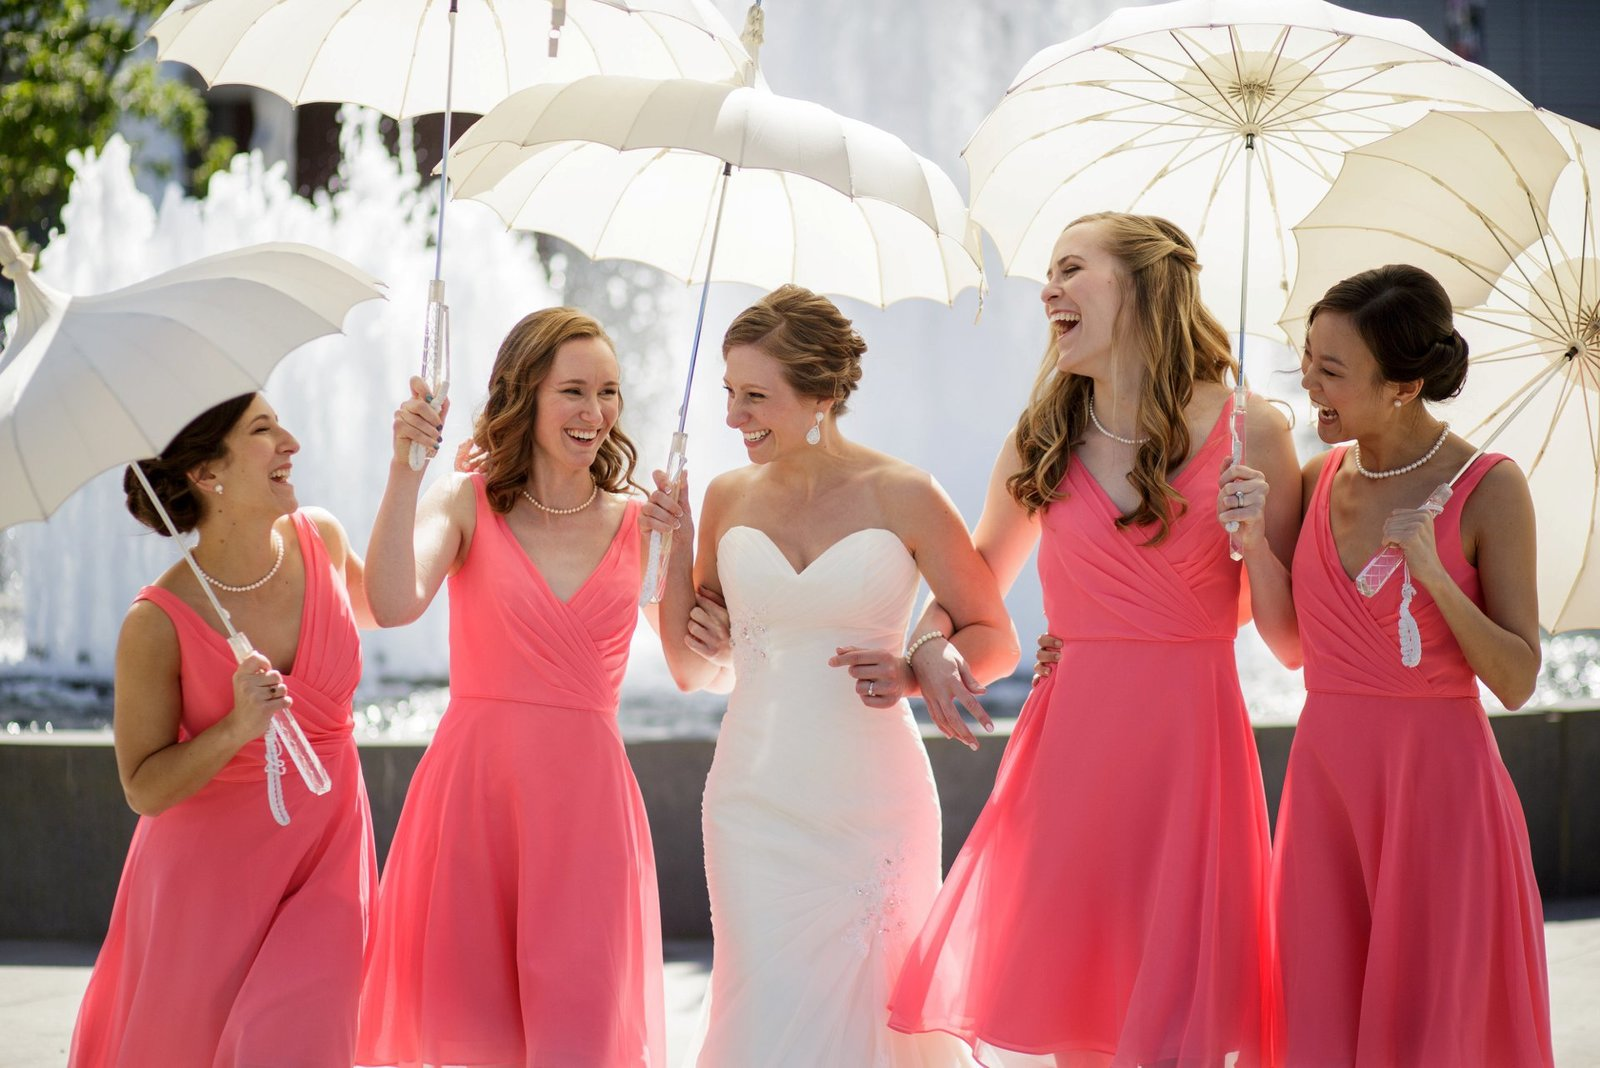 bridal-party-photos-with-umbrellas